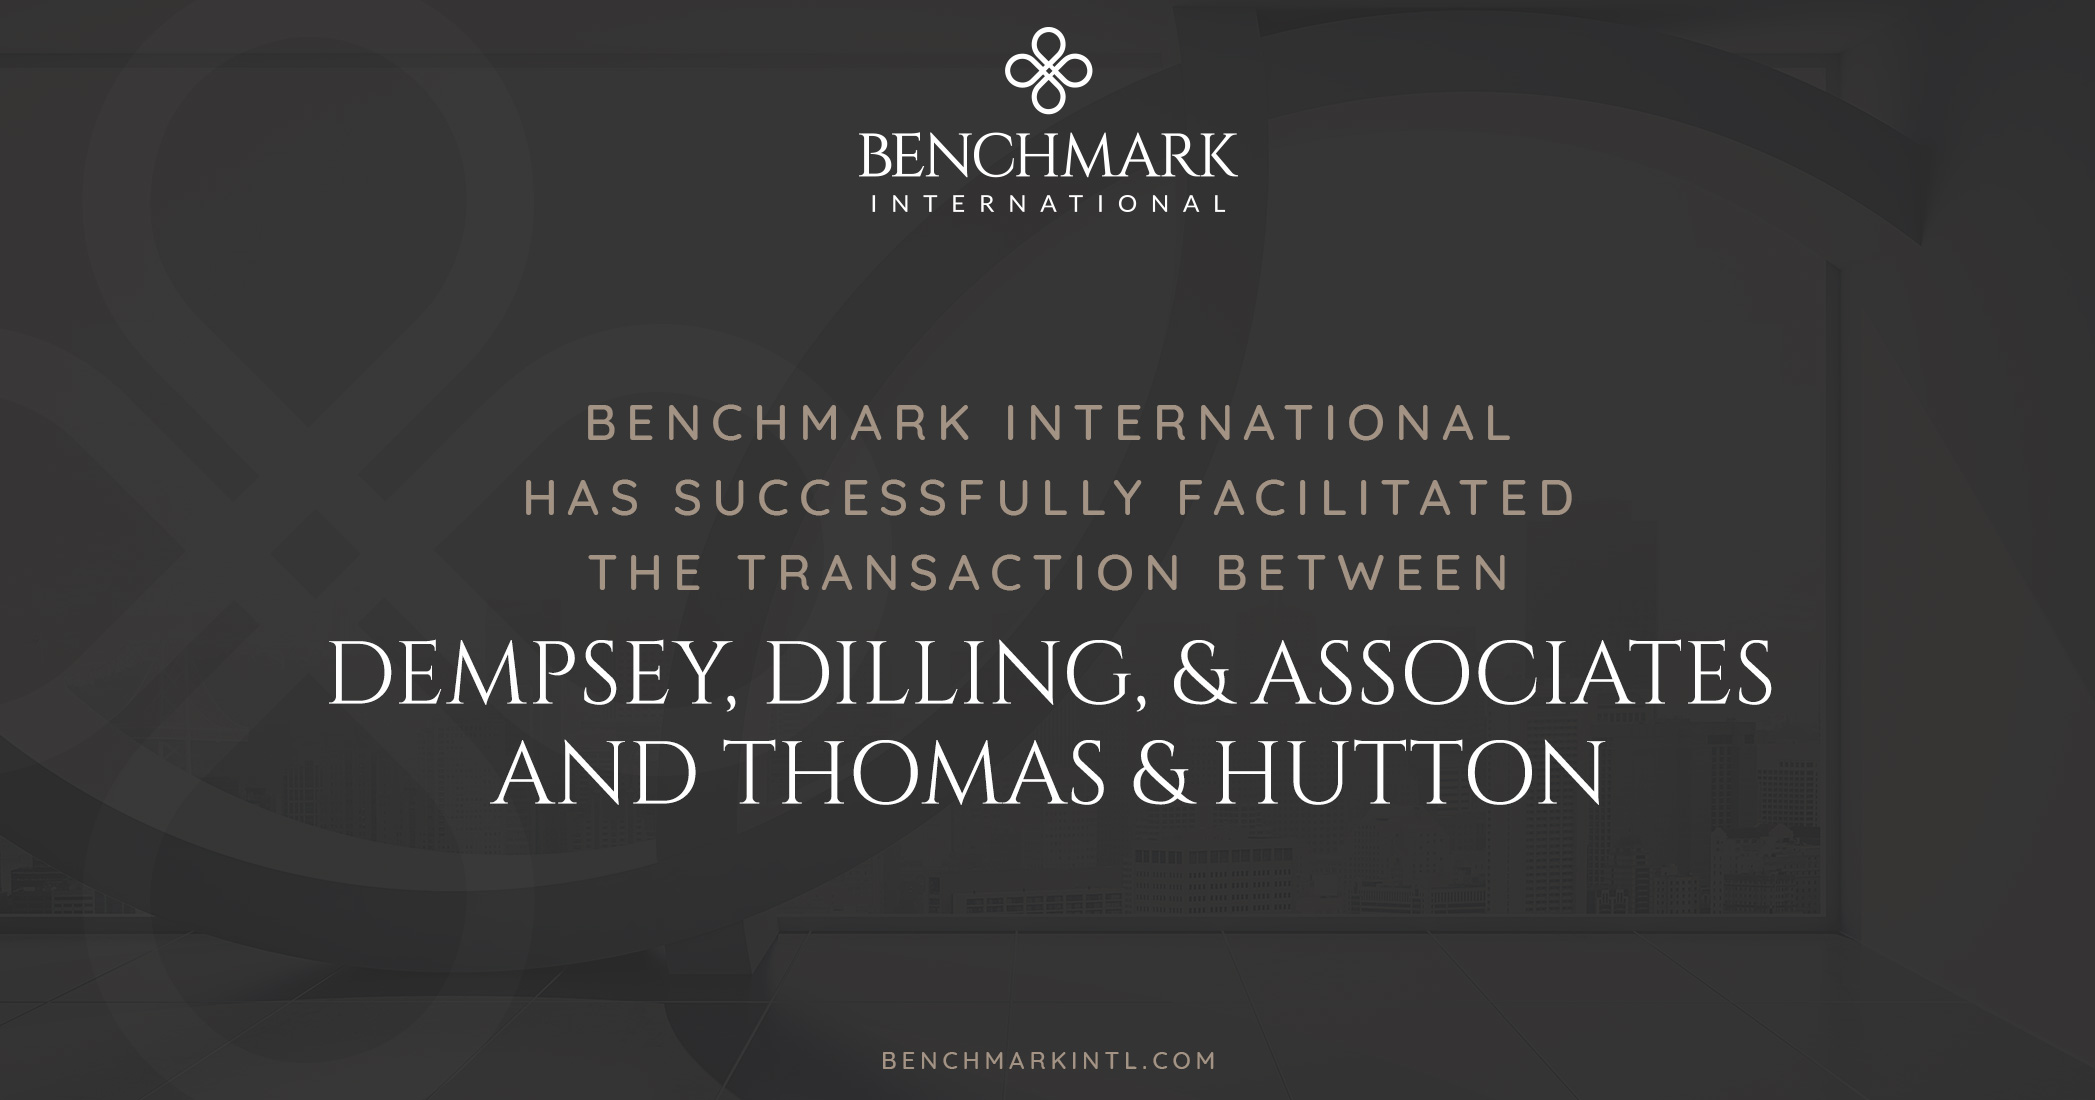 Benchmark International Successfully Facilitated the Transaction between Dempsey, Dilling & Associates and Thomas & Hutton